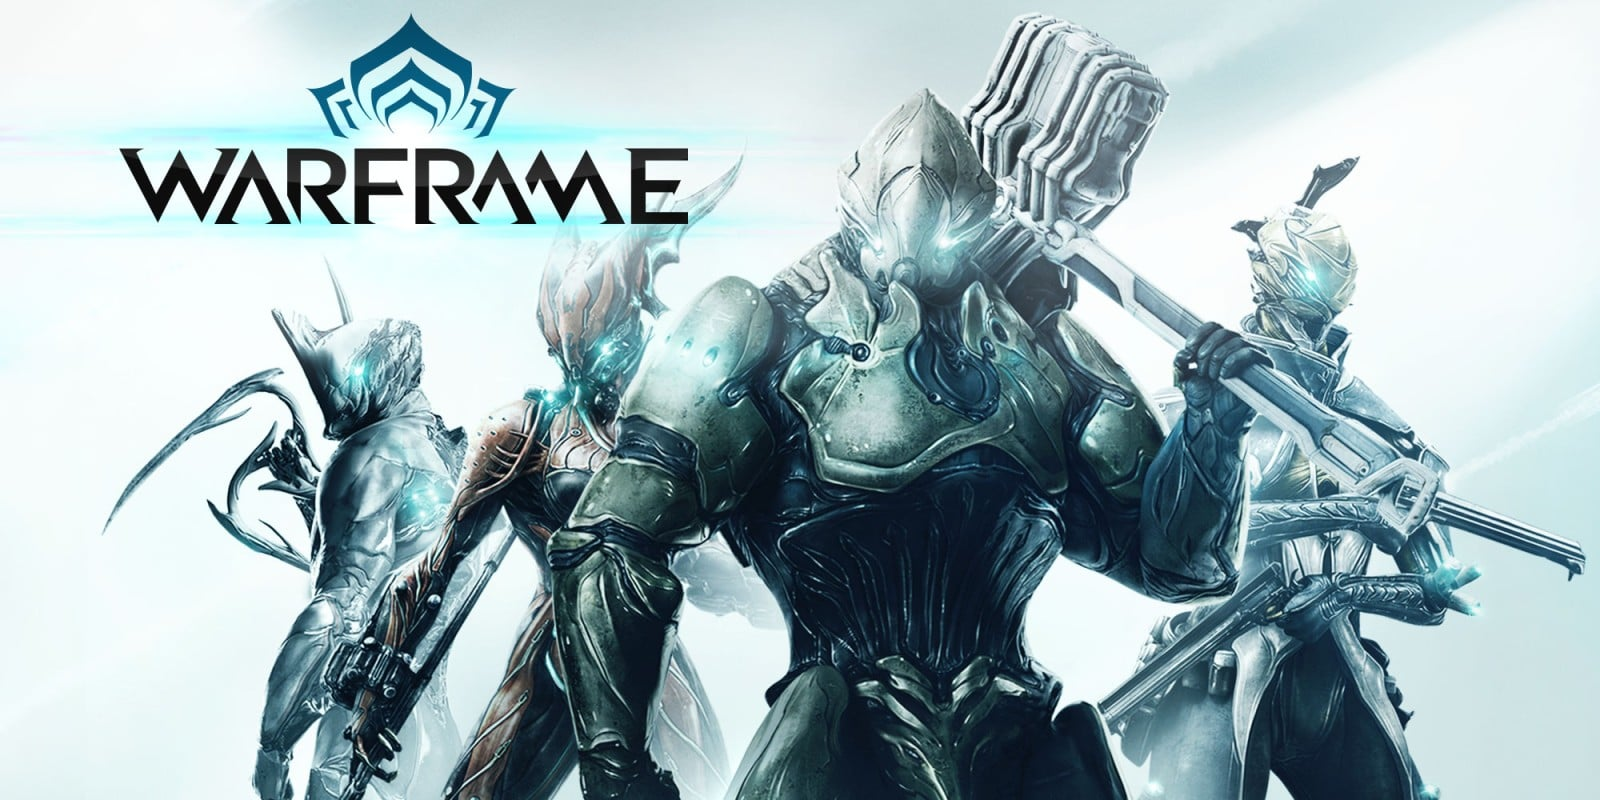 Warframe Update Version 1.75 Full New Patch 25.4.0 Notes PC Xbox One PS4 Full Details Here 2019